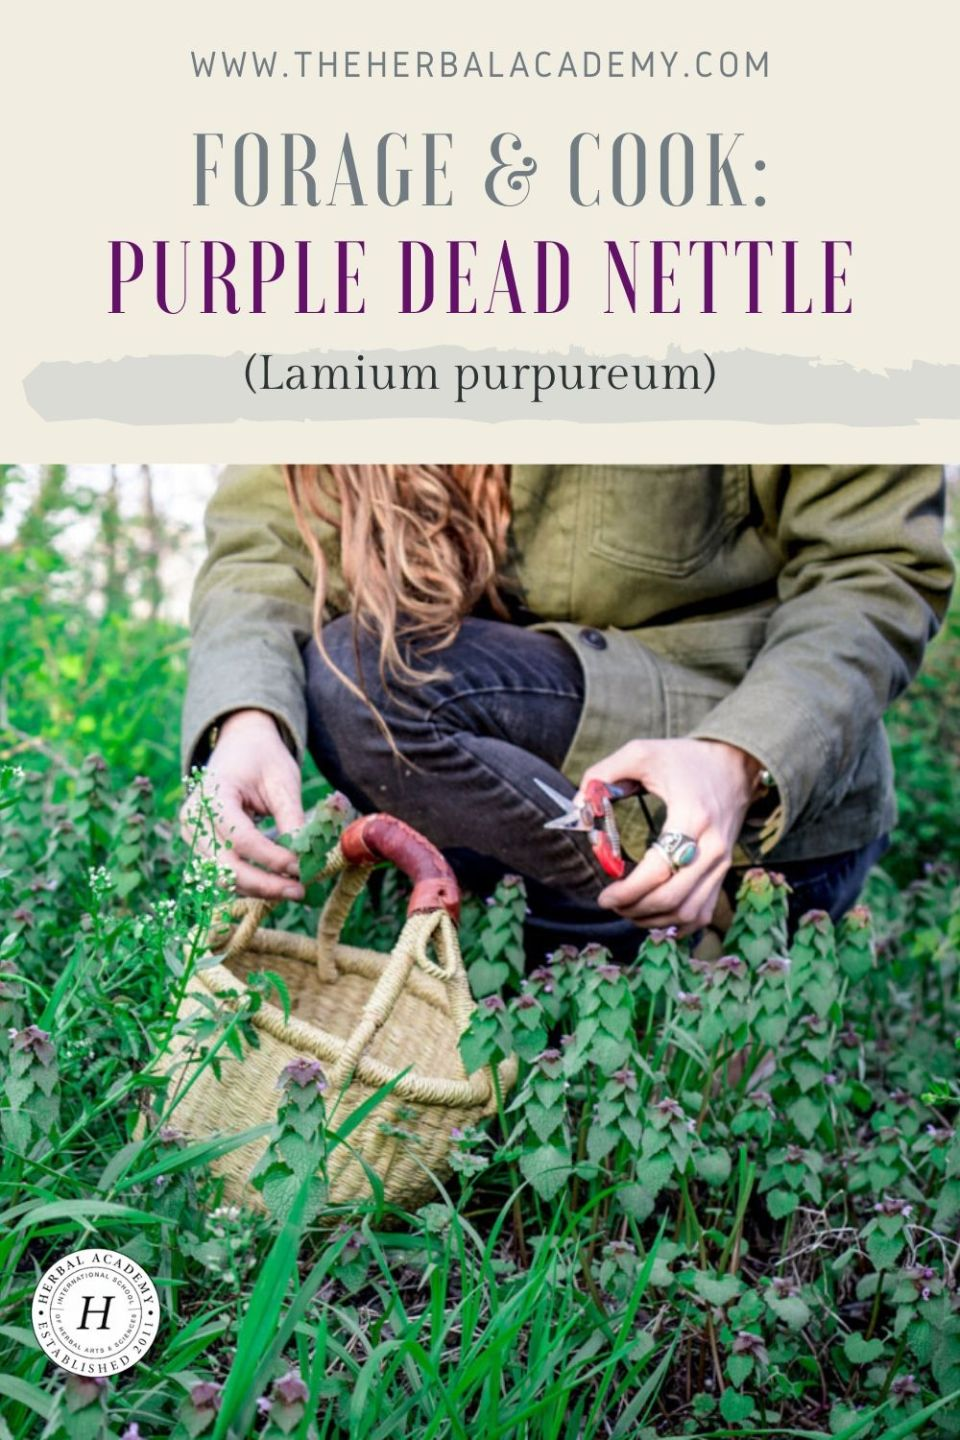 Purple Dead Nettle: Nutrition and Recipes | Herbal Academy | If you enjoy foraging, then purple dead nettle (Lamium purpureum) is a wonderful plant to become acquainted with through these two simple recipes.